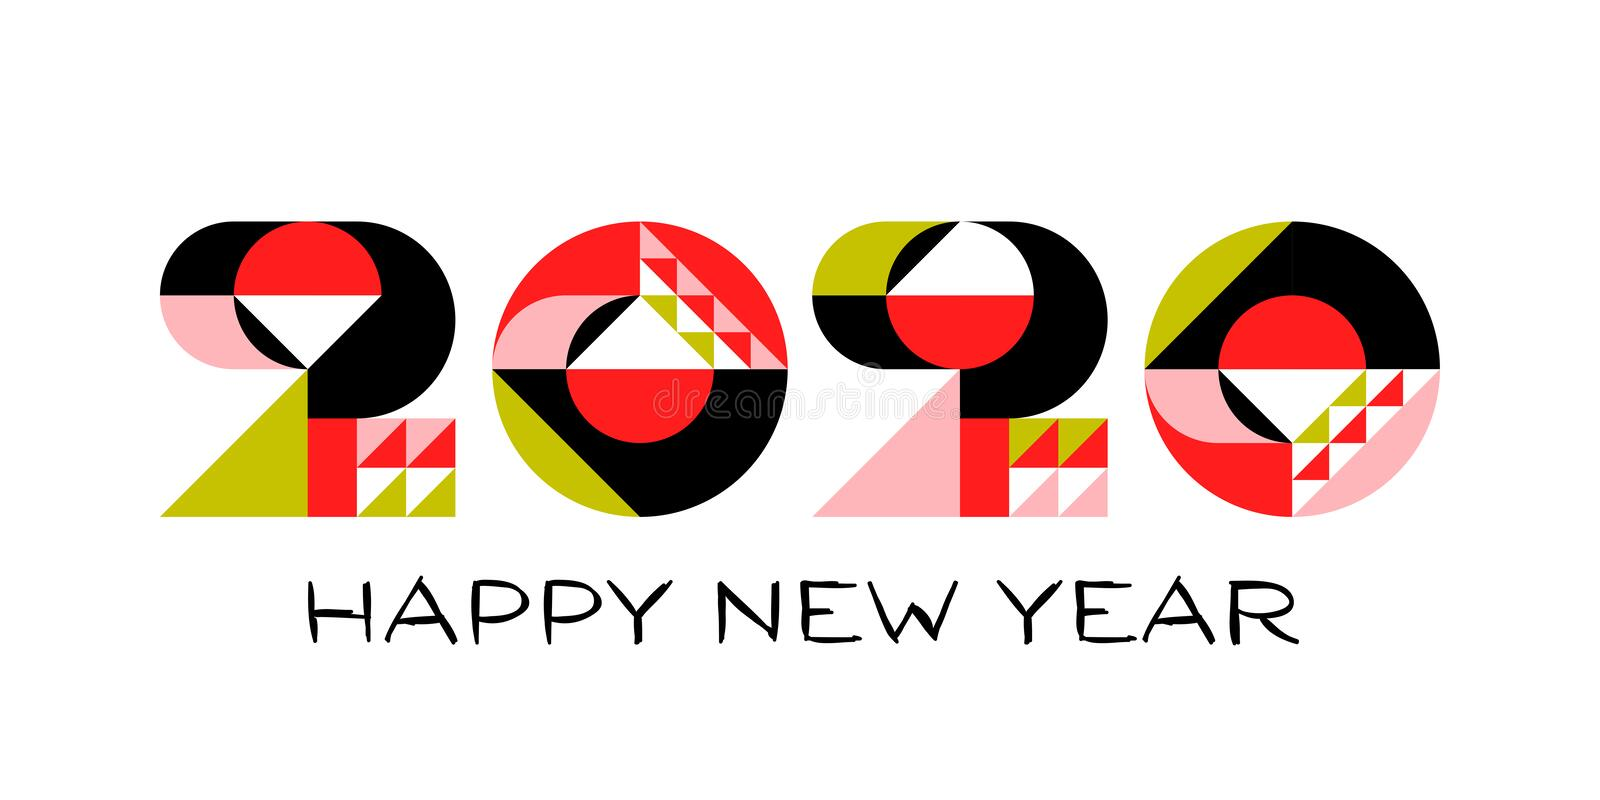 Happy New Year 2020 logo design with multicolored geometric numbers with abstract design elements on white background stock illustration